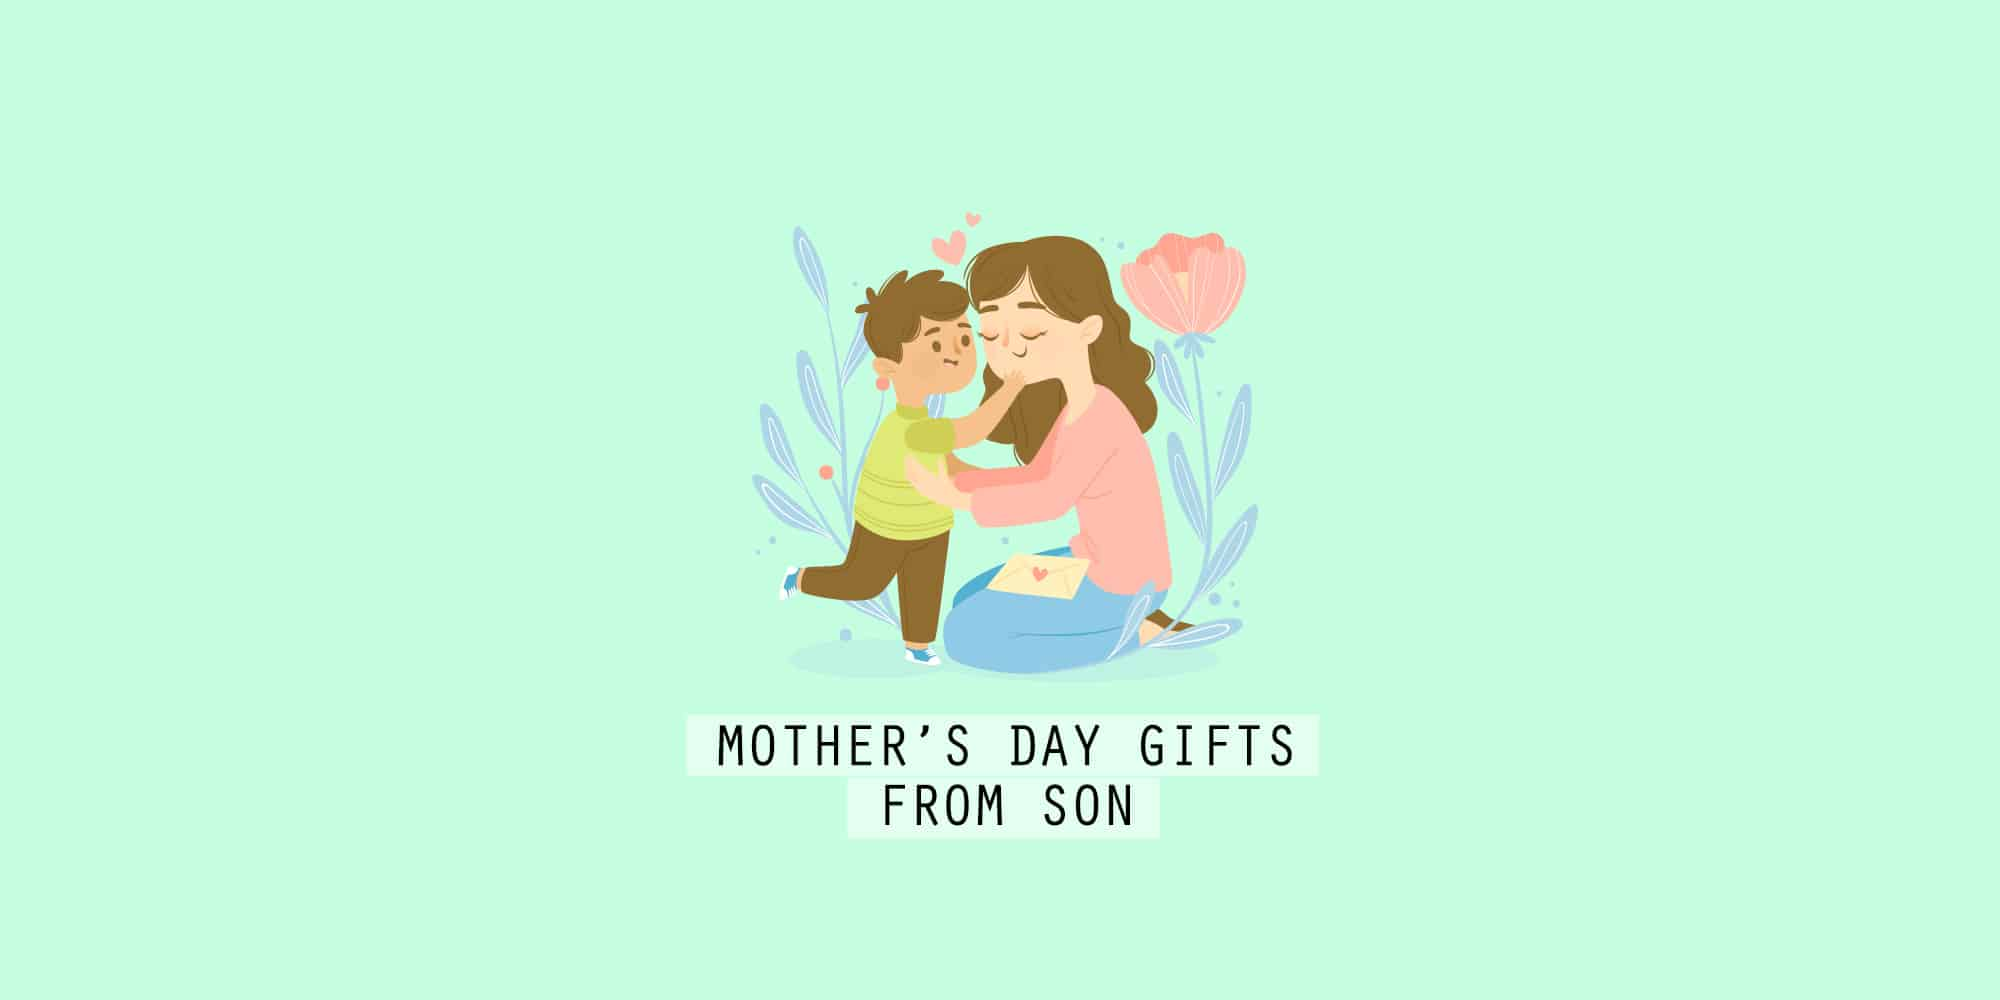 25+ Best Mother's Day Gifts from Sons That She'll Cherish (2021)